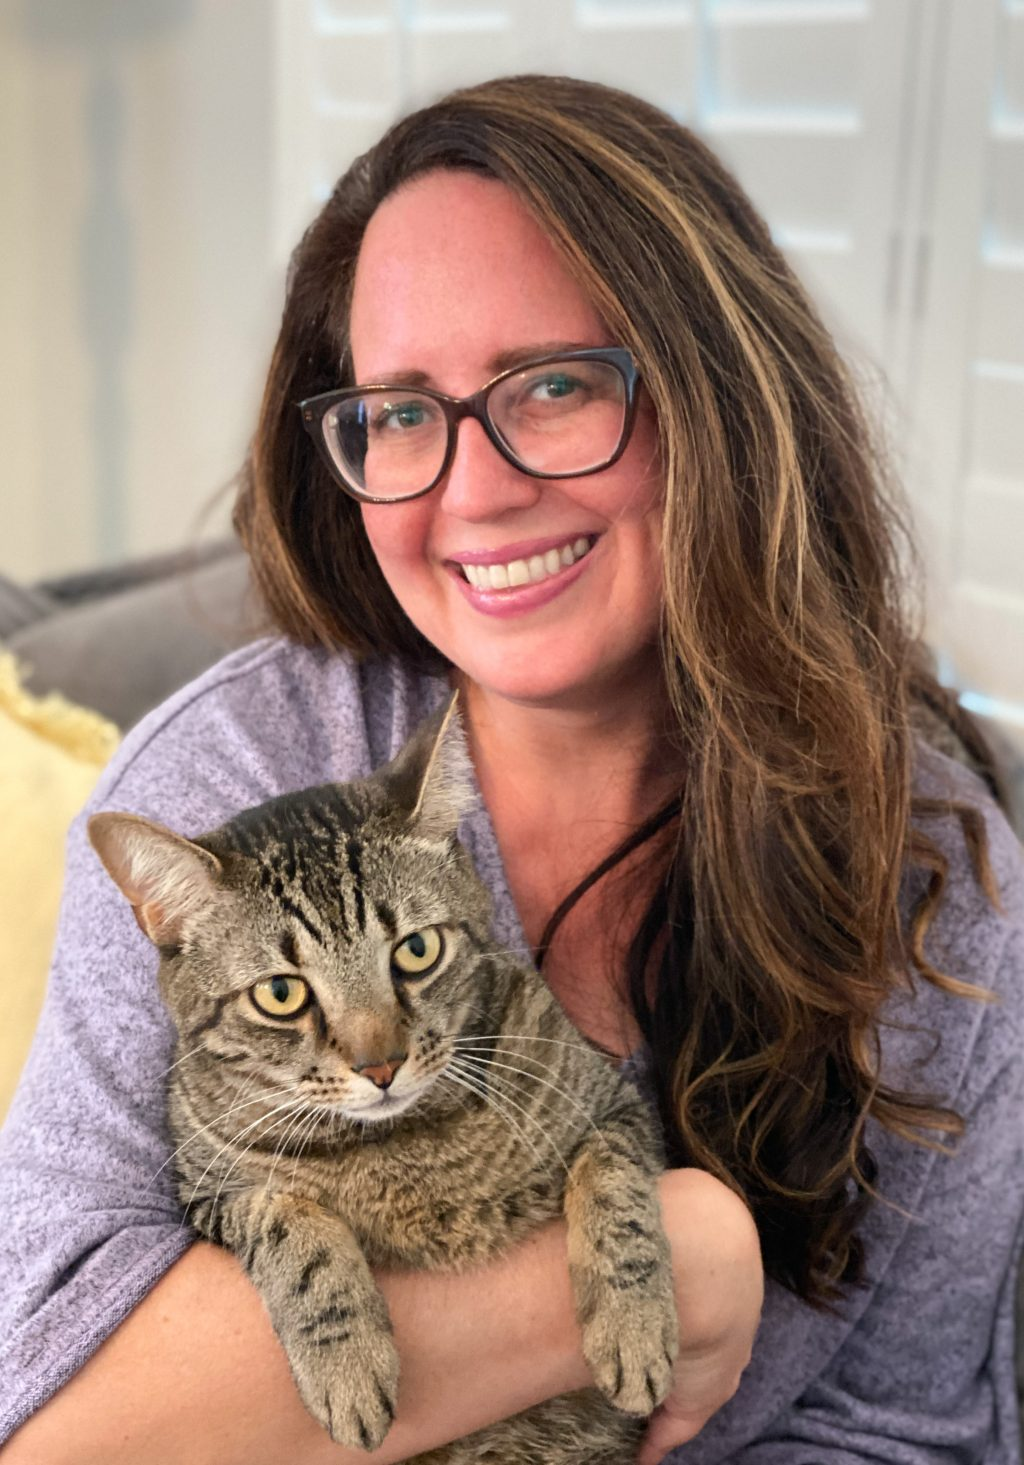 long brown haired woman in glasses holding a striped tiger tabby cat